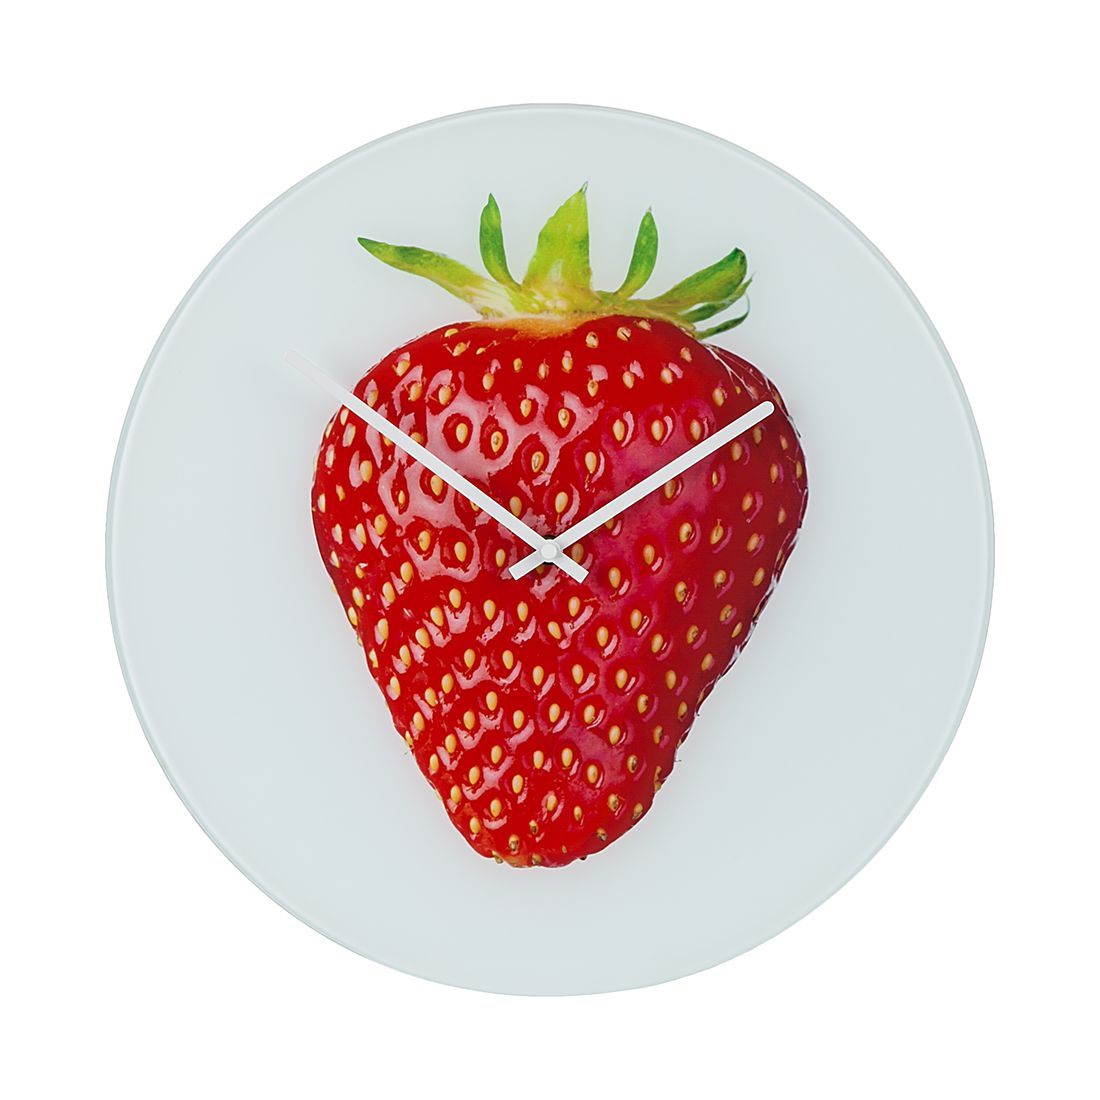 Home 24 - Horloge strawberry, pro art